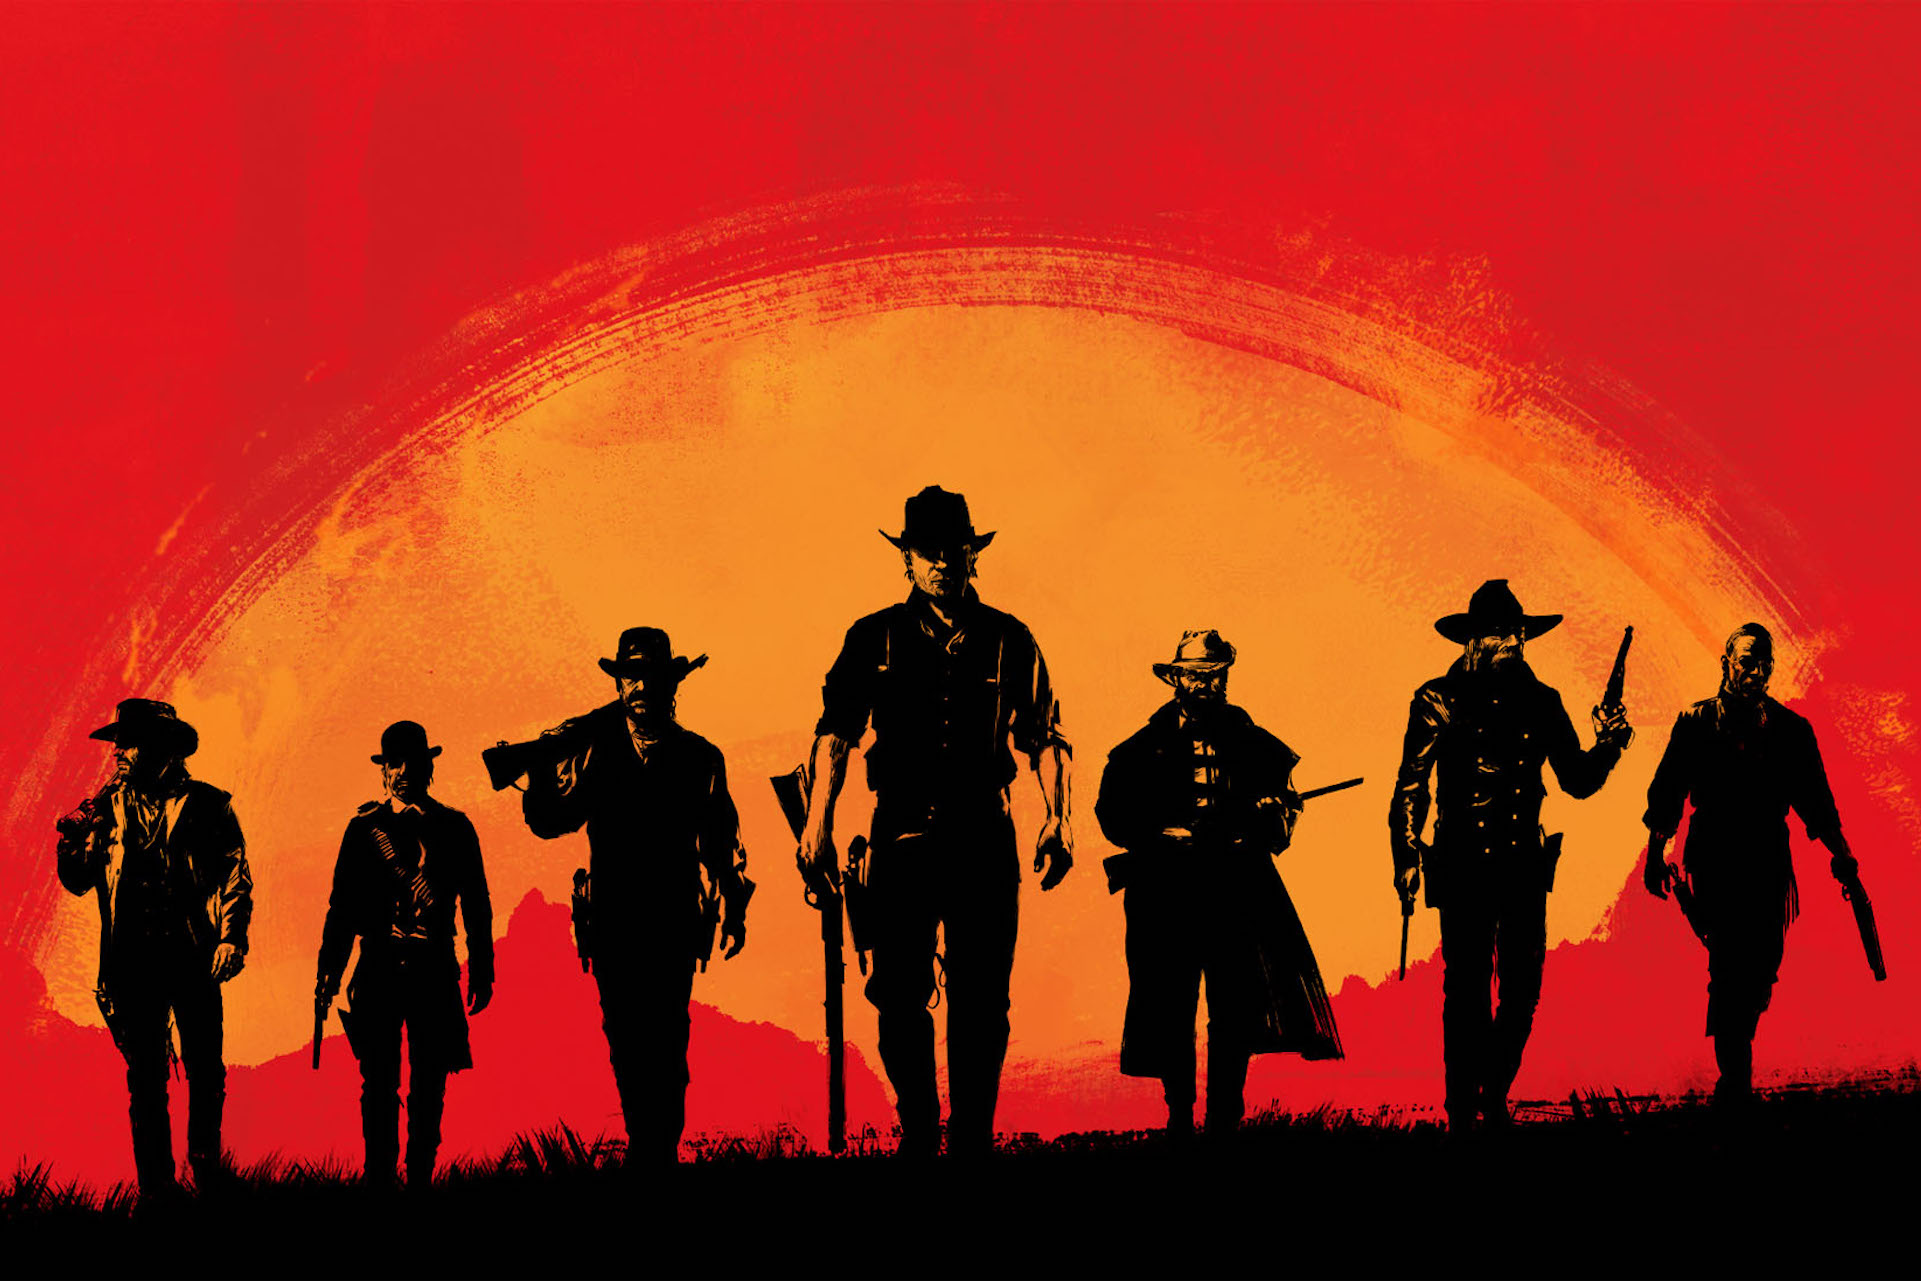 Rockstar Games' Red Dead Redemption 2 is a sure bet this week, says Leafly's Hit This.